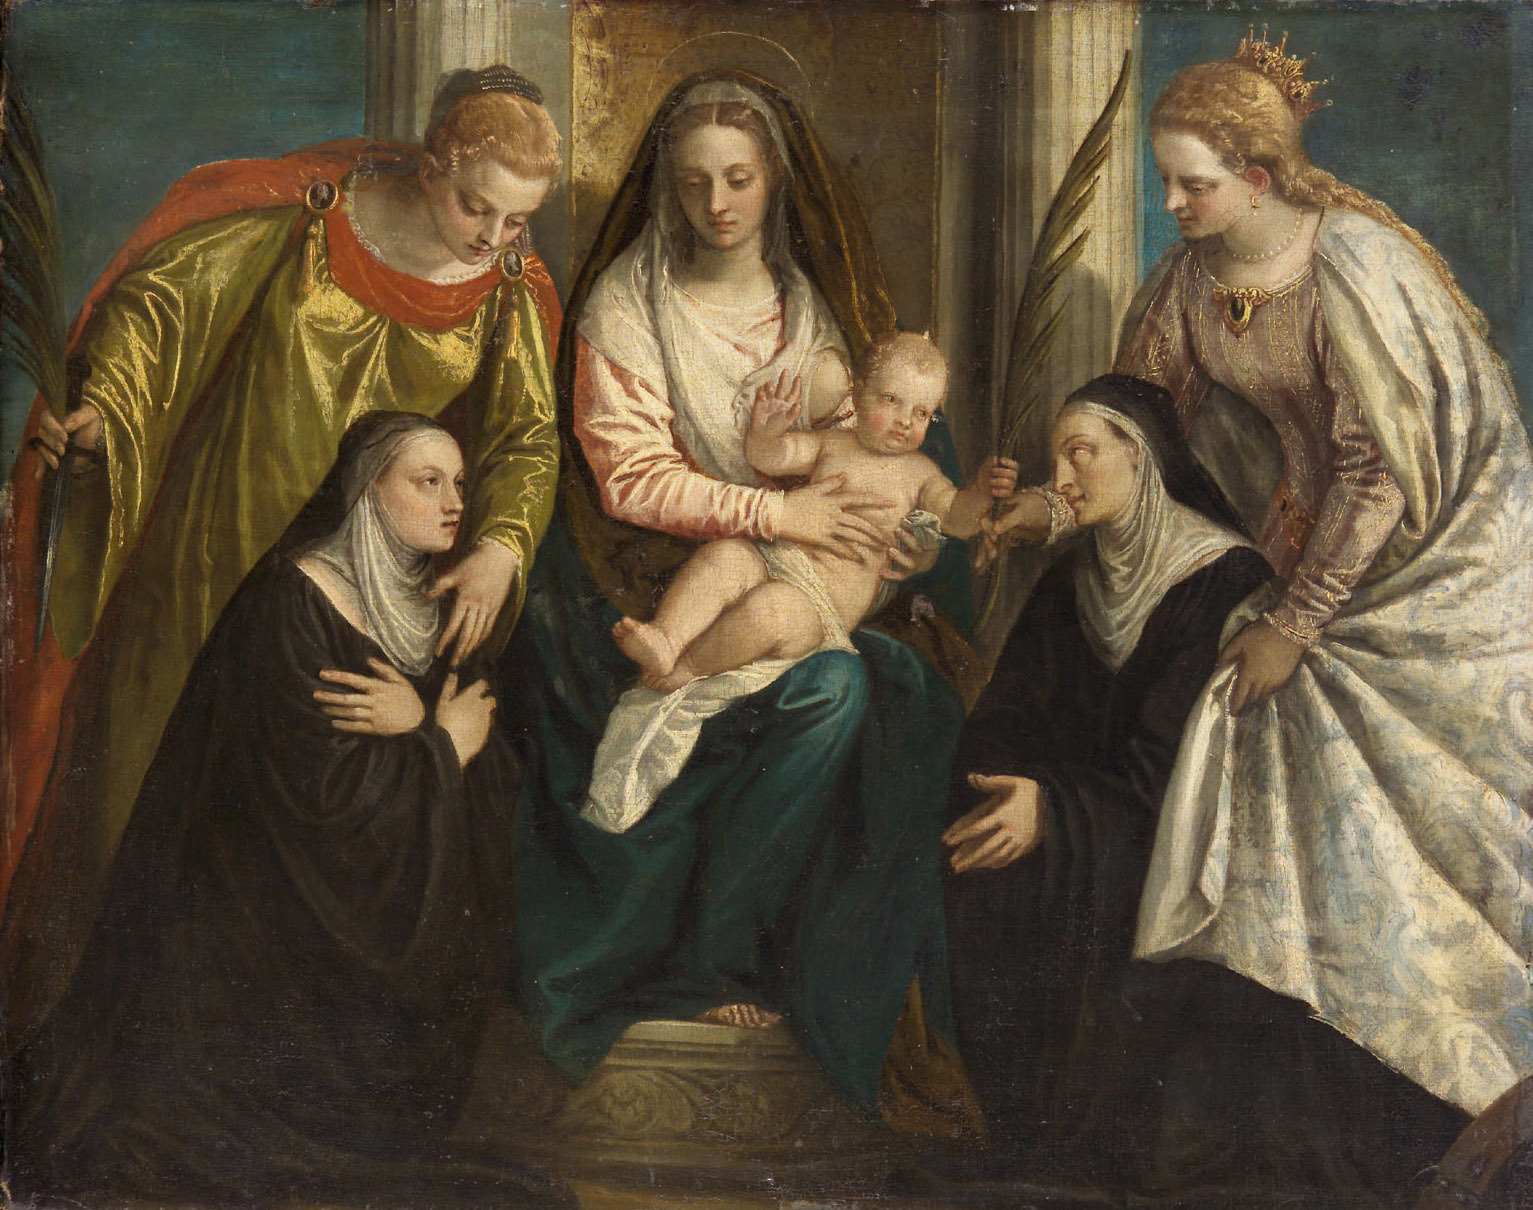 File:Veronese - Madonna and Child with Saints Lucy and Catherine and 2 Nuns GG 50.jpg